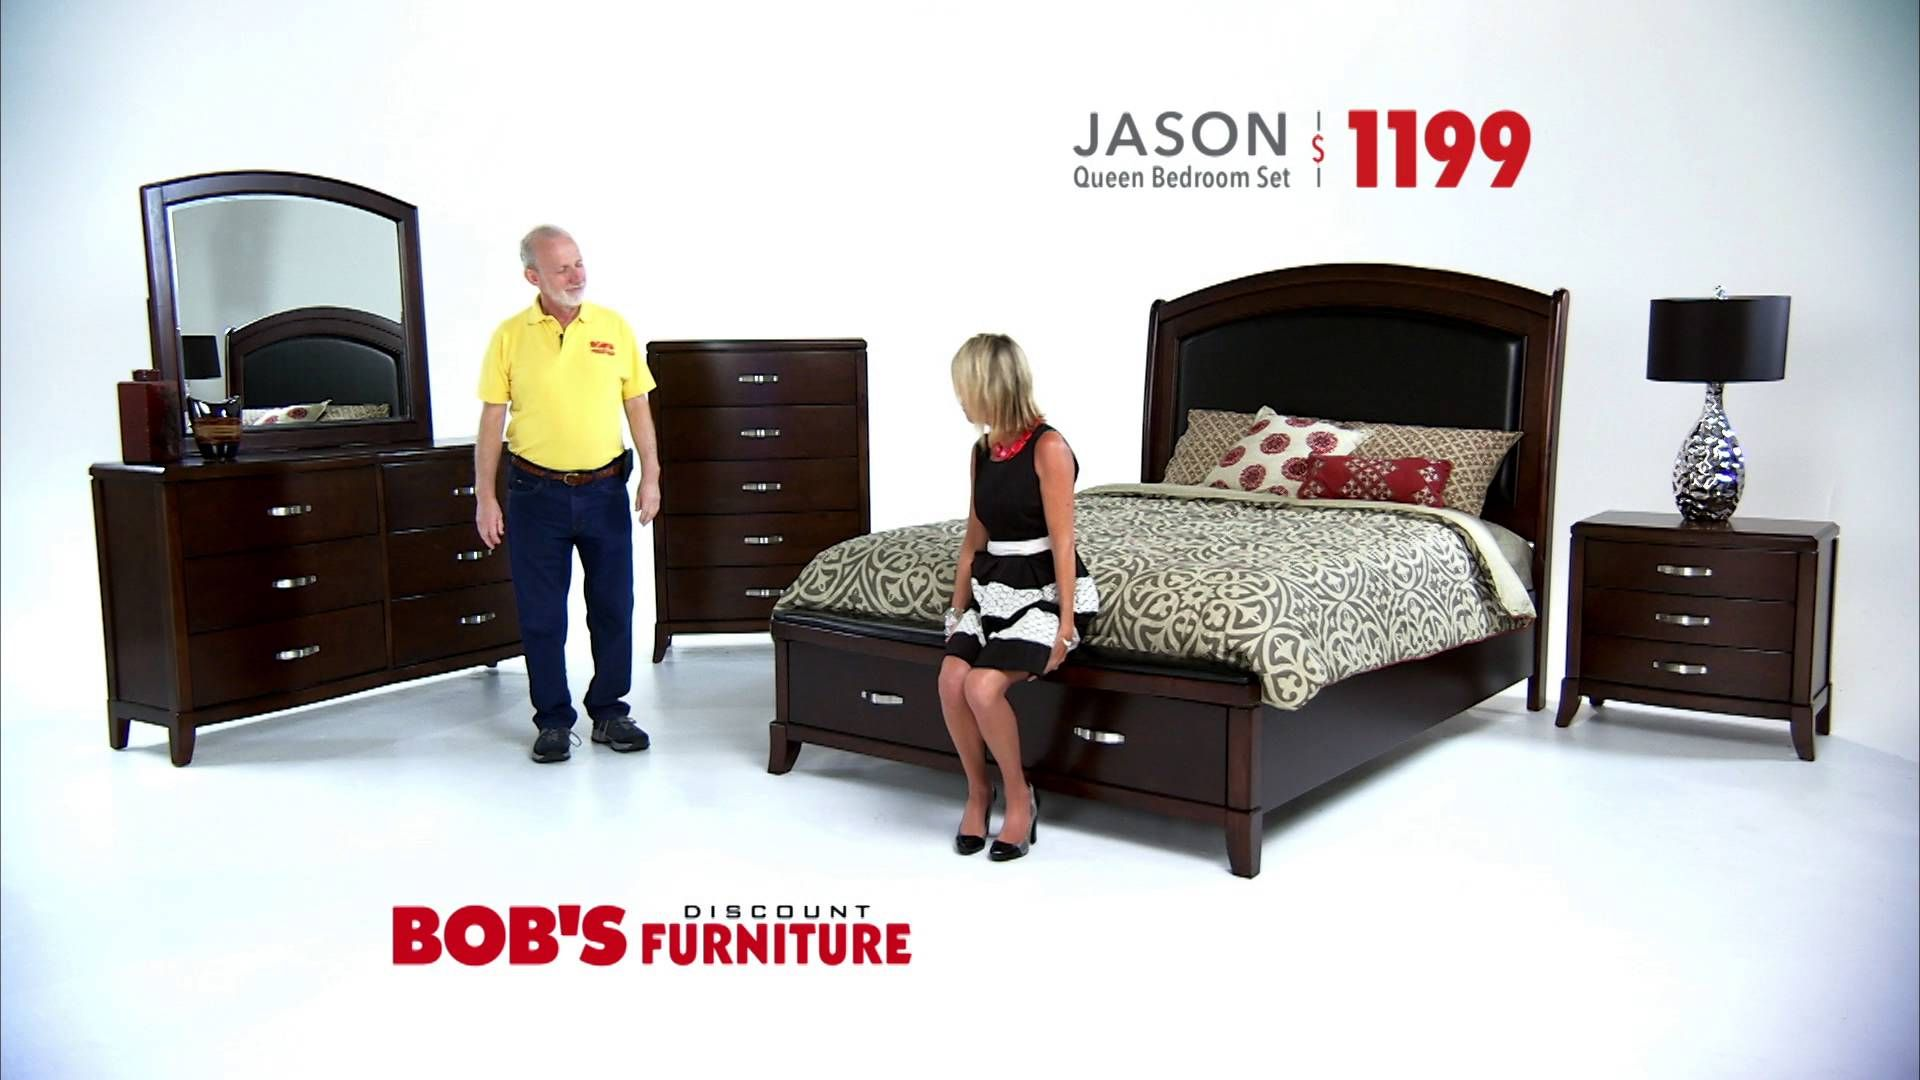 5 reference of chair bed bobs furniture in 5  Furniture